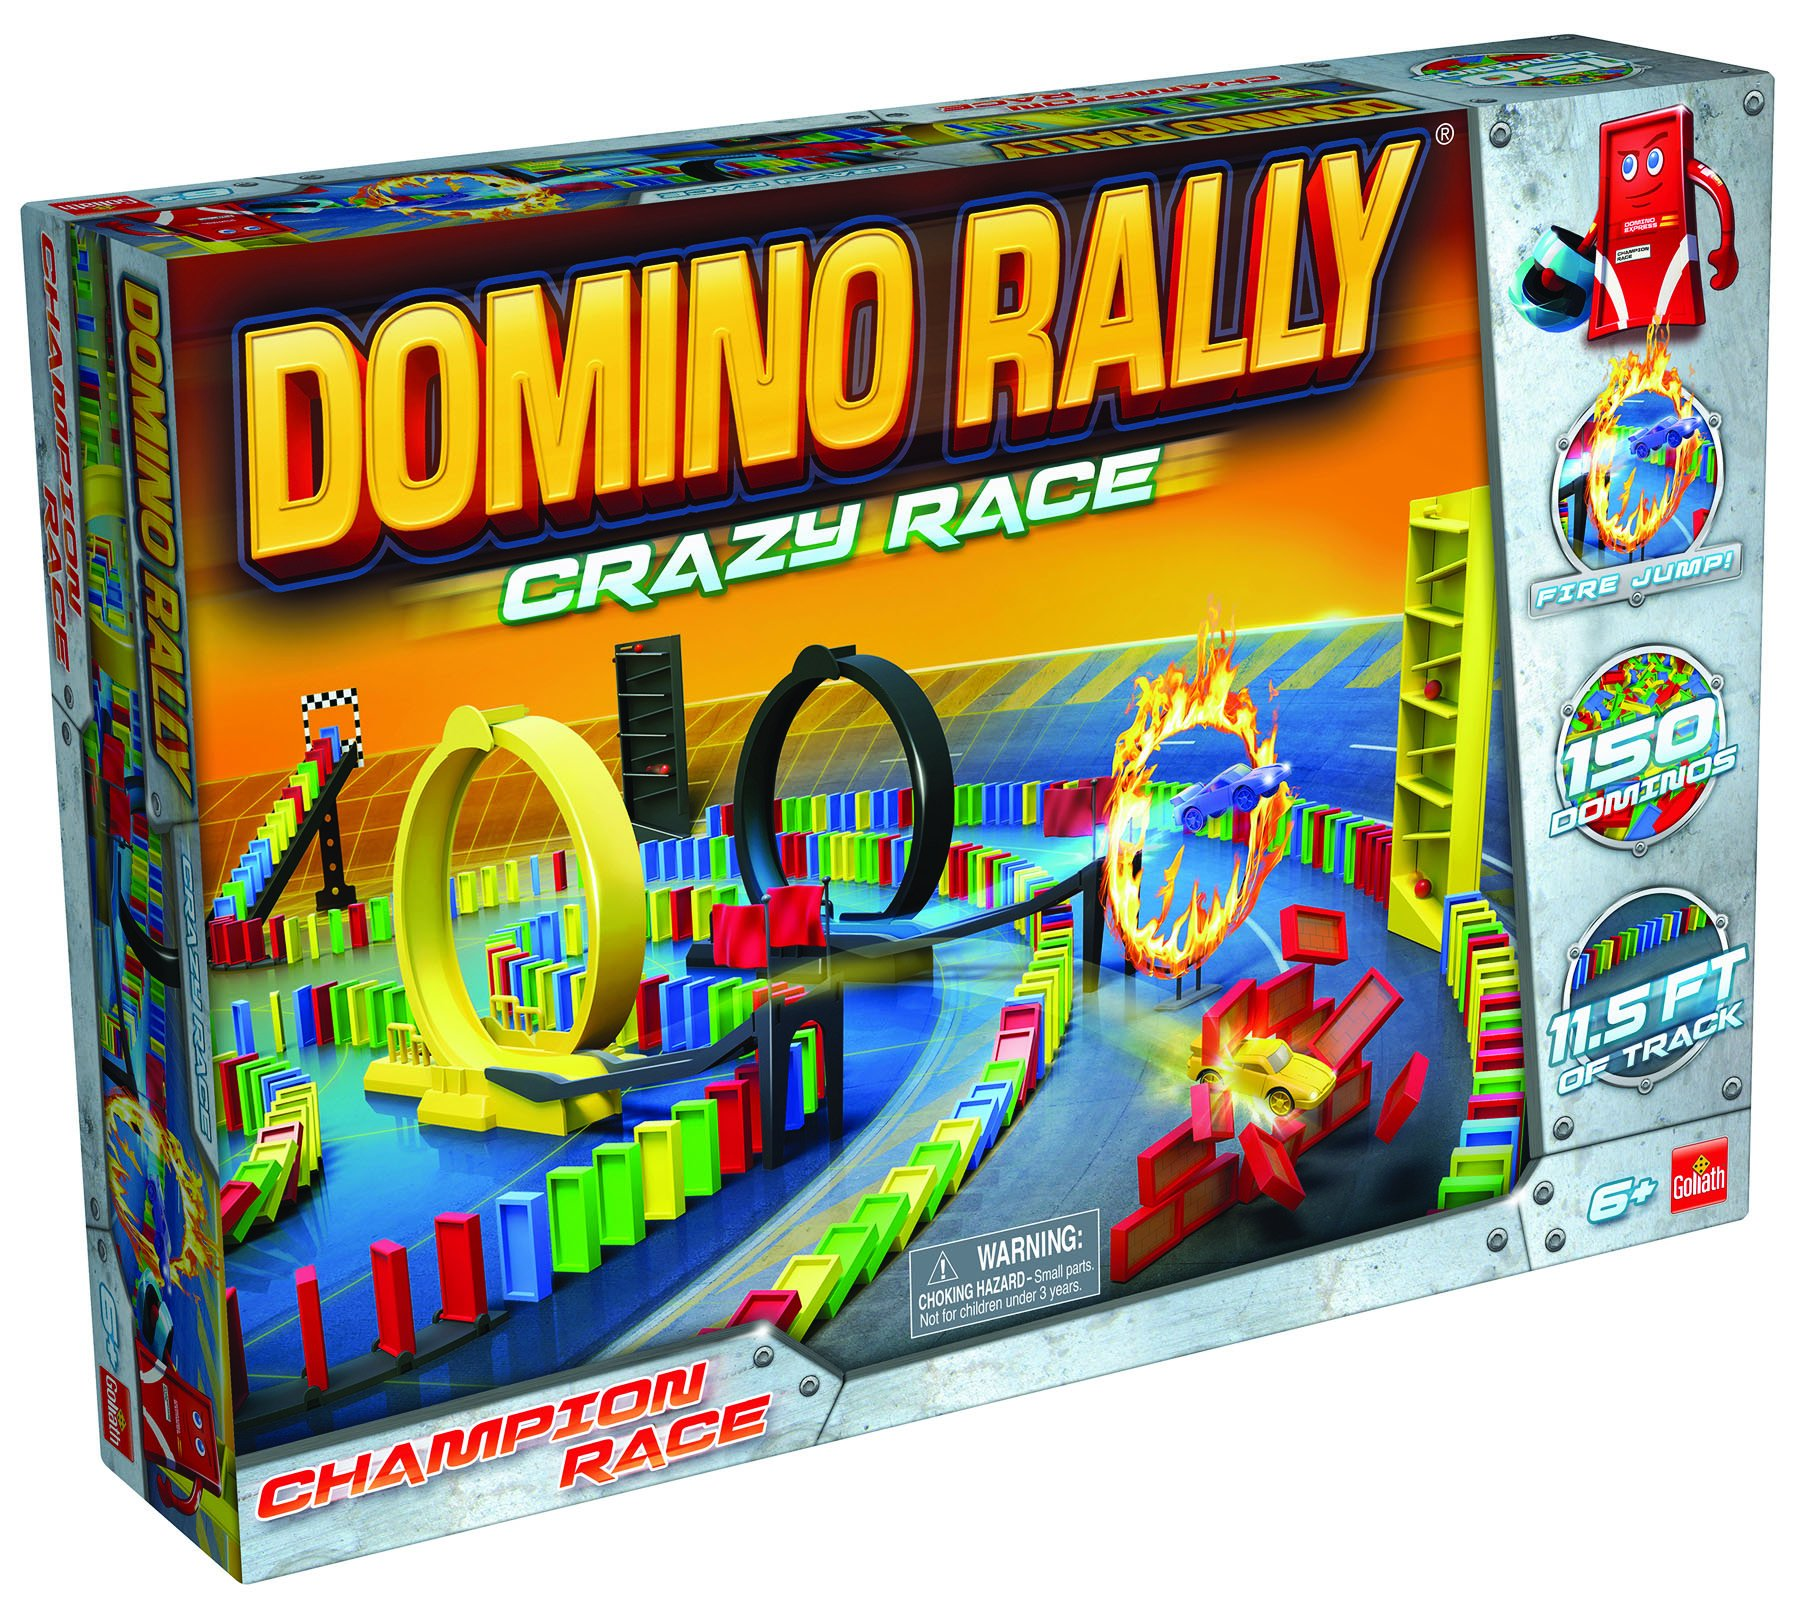 Domino Rally Crazy Race - Dominoes for Kids - STEM-based Learning Set by Goliath